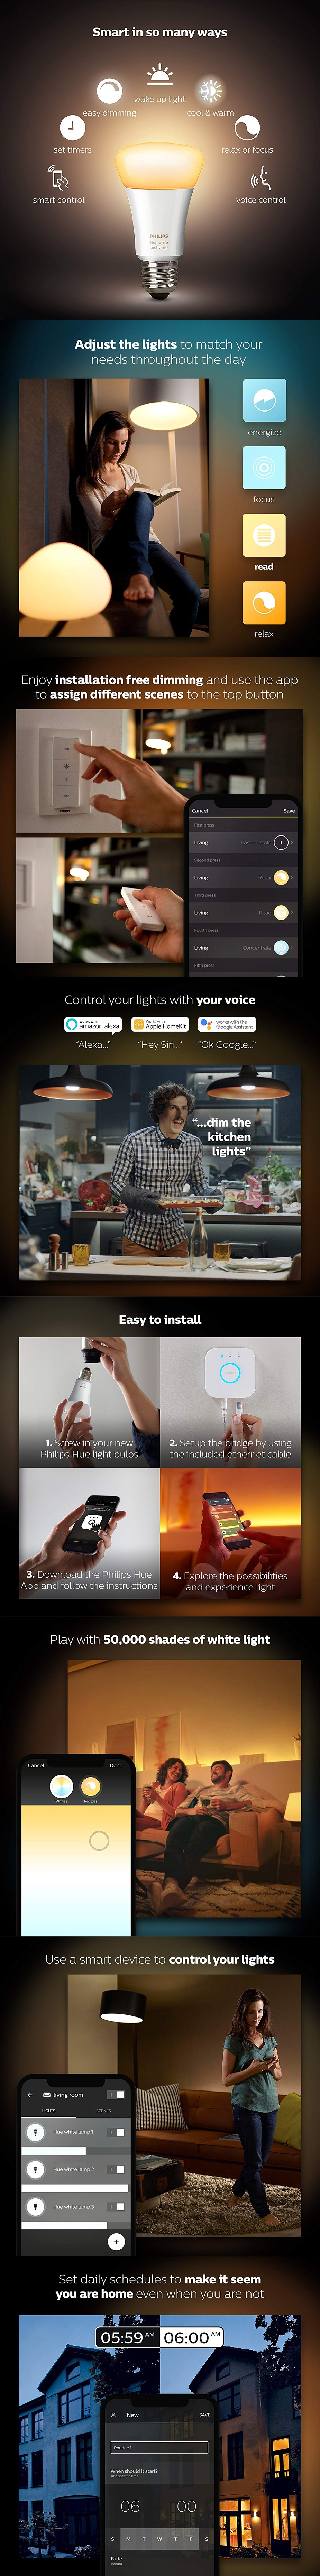 Philips Hue White Ambience Smart Bulb Starter Kit - Edison